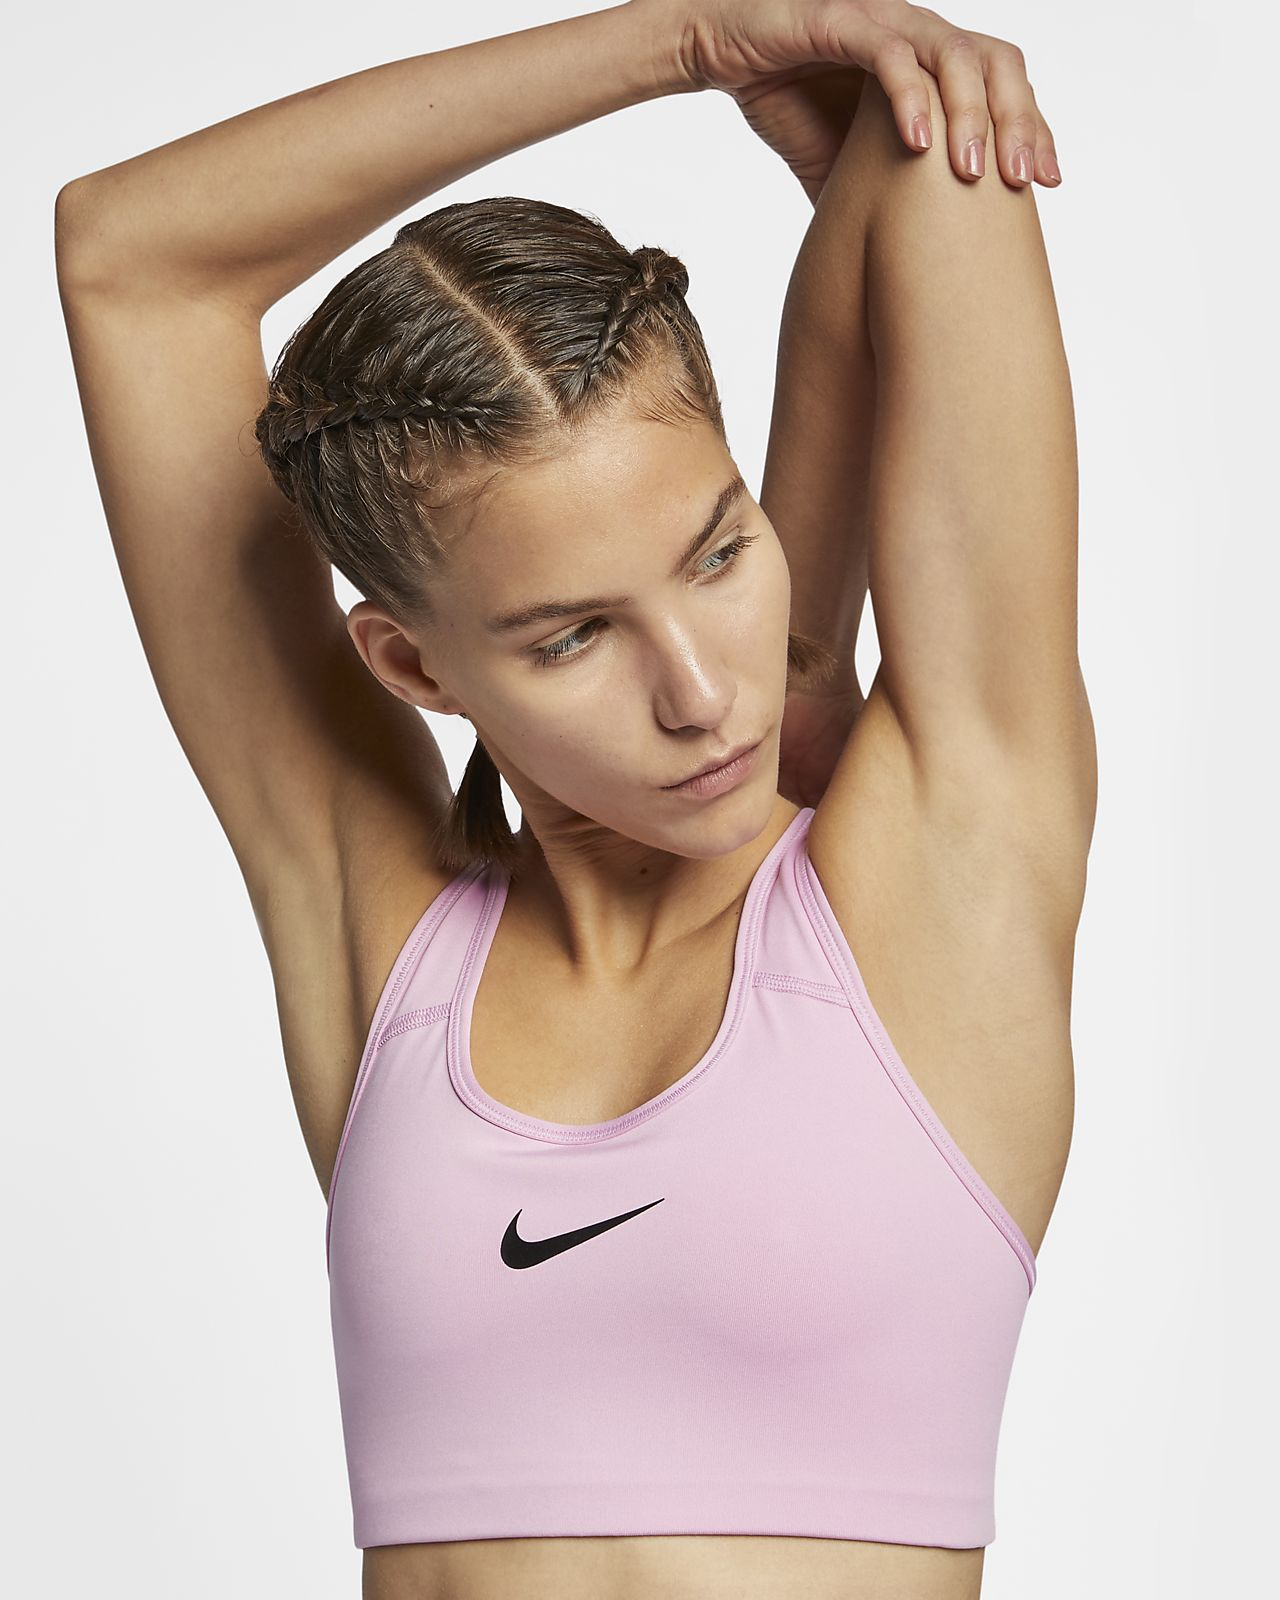 0c5300a1699d1 Nike Women s Swoosh Medium Support Sports Bra. Nike.com